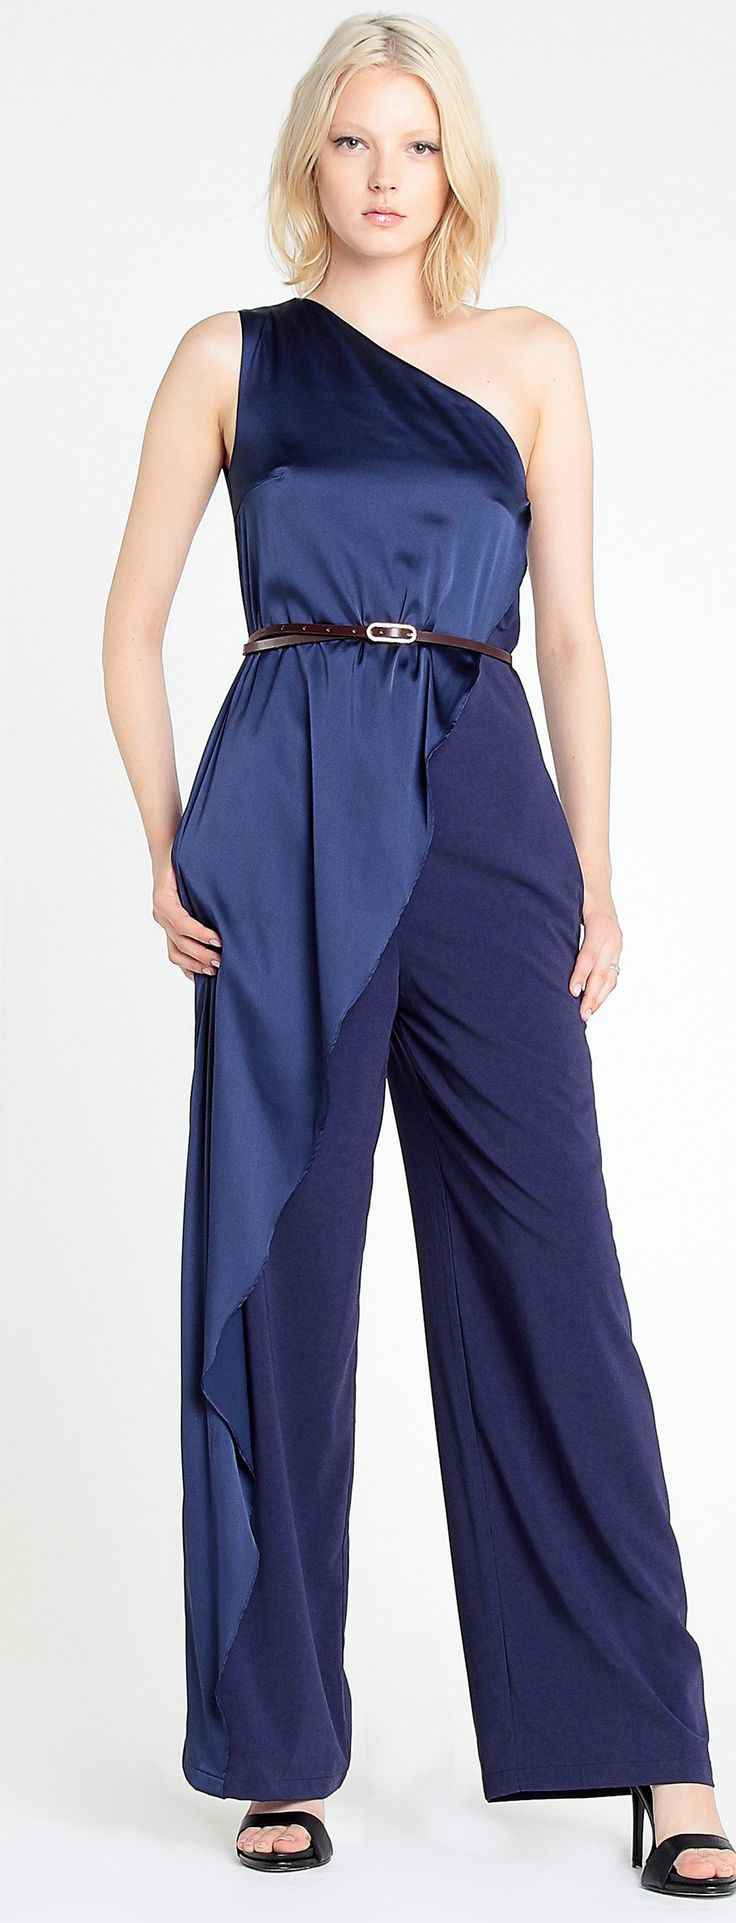 An Oscar-worthy outfit, this one-shouldered jumpsuit is designed with a wavy light sheen overlay, with a side zip and side seam pockets. The jumpsuit can be styled with a thin belt for added style.  http://www.paisie.com/collections/jumpsuits-playsuits/products/one-shoulder-jumpsuit-with-curved-overlay